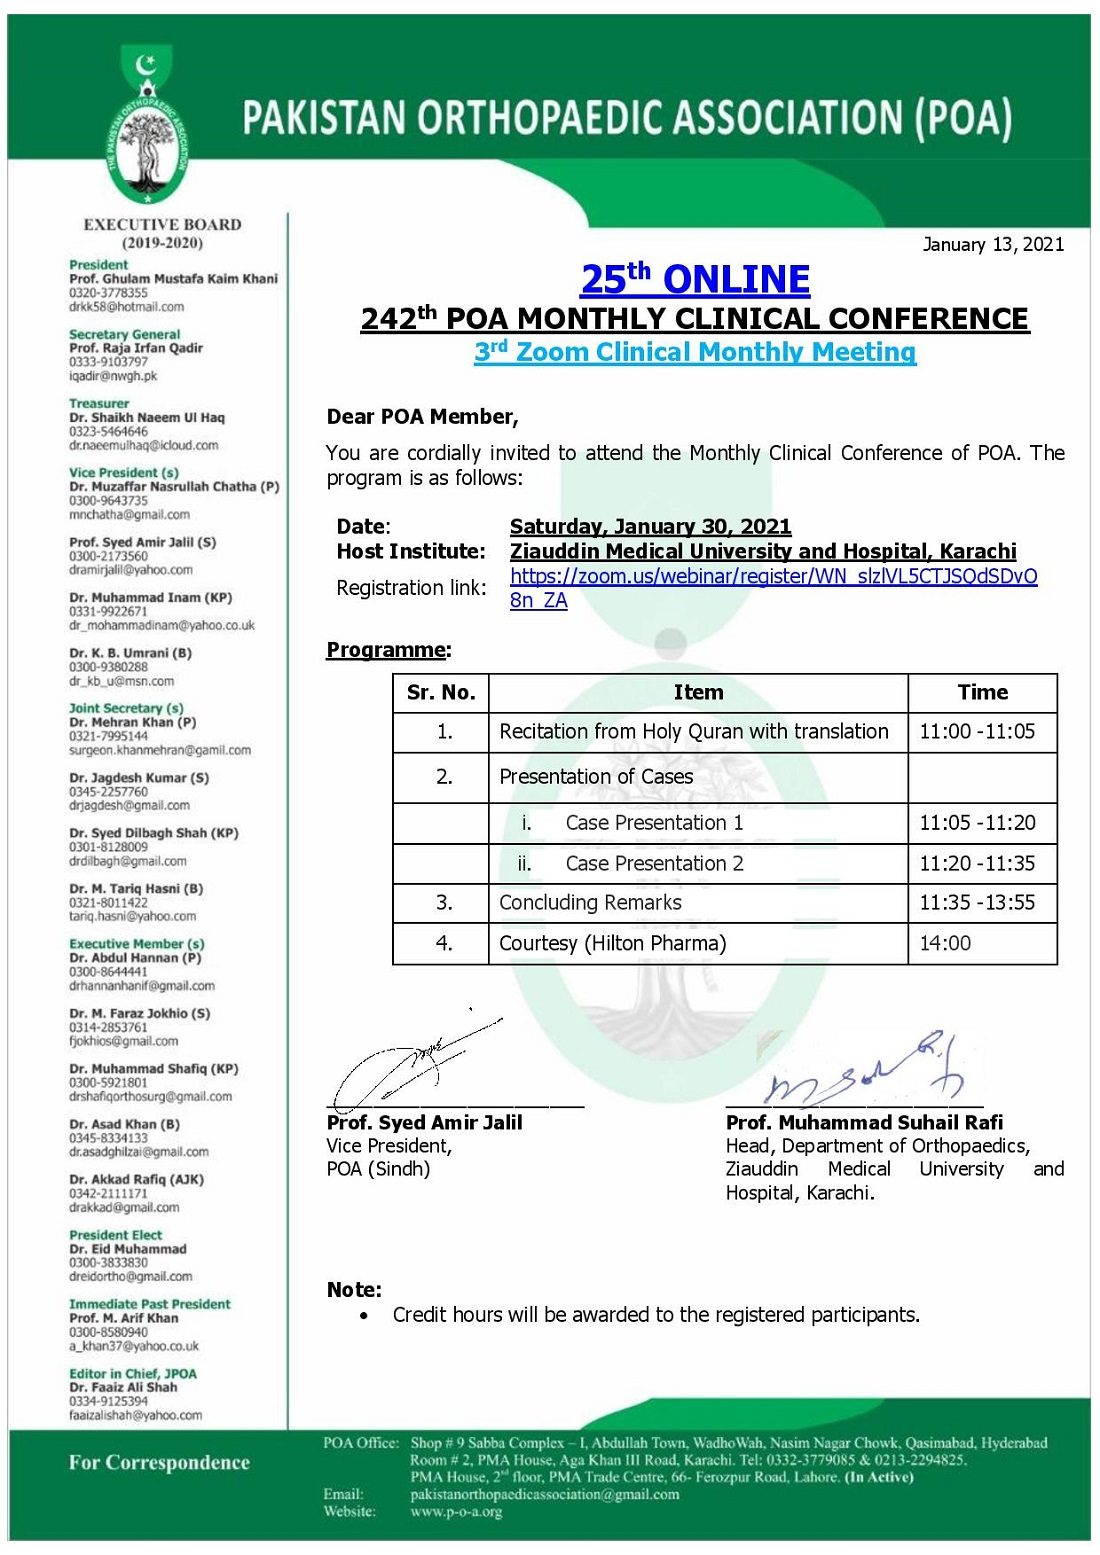 3rd Zoom Clinical Monthly Meeting